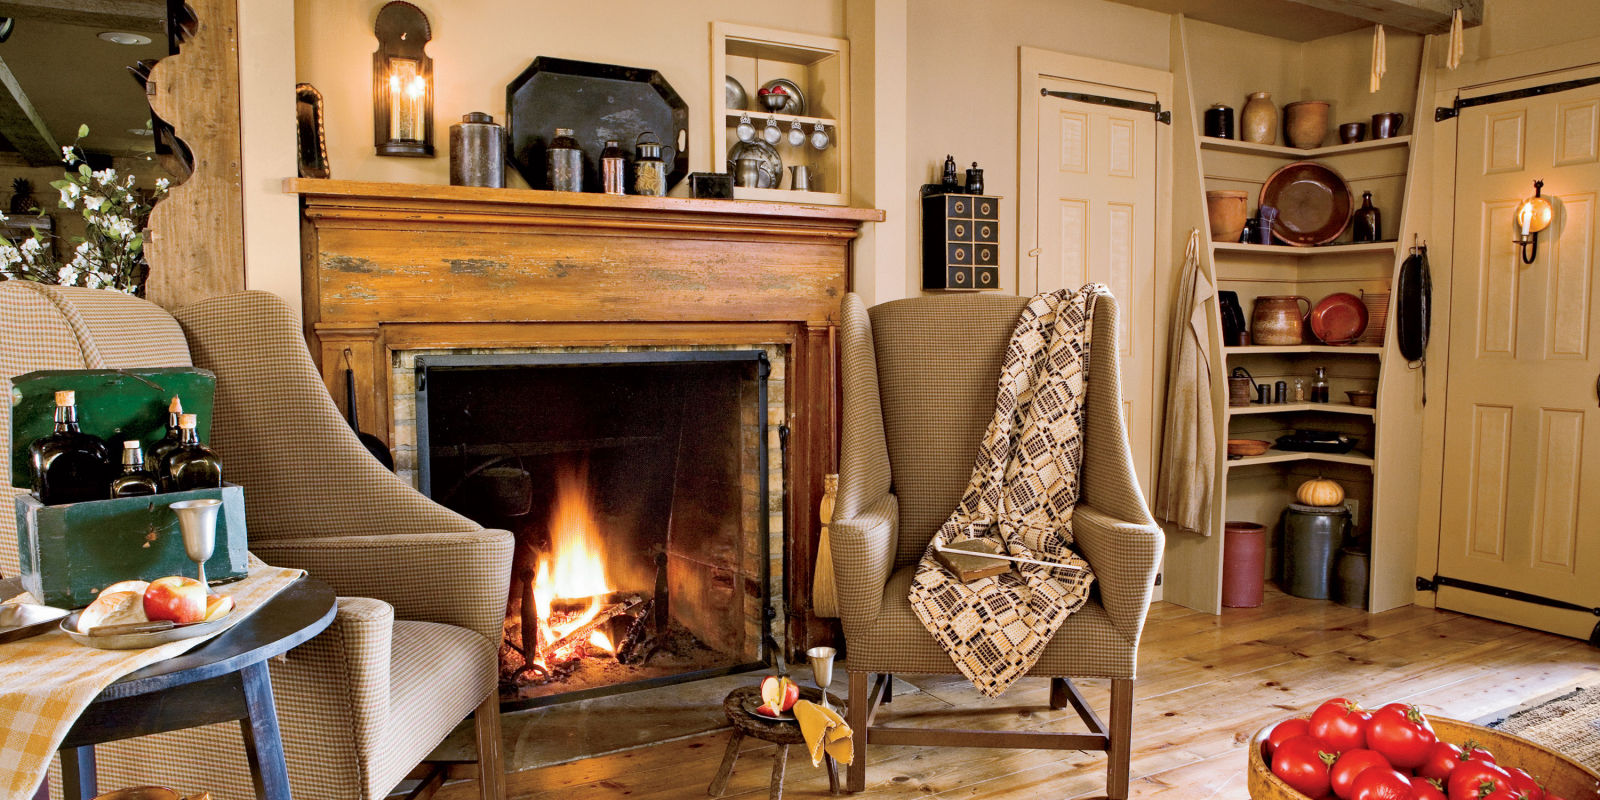 Design Mantel Decorating Ideas 40 fireplace design ideas mantel decorating ideas